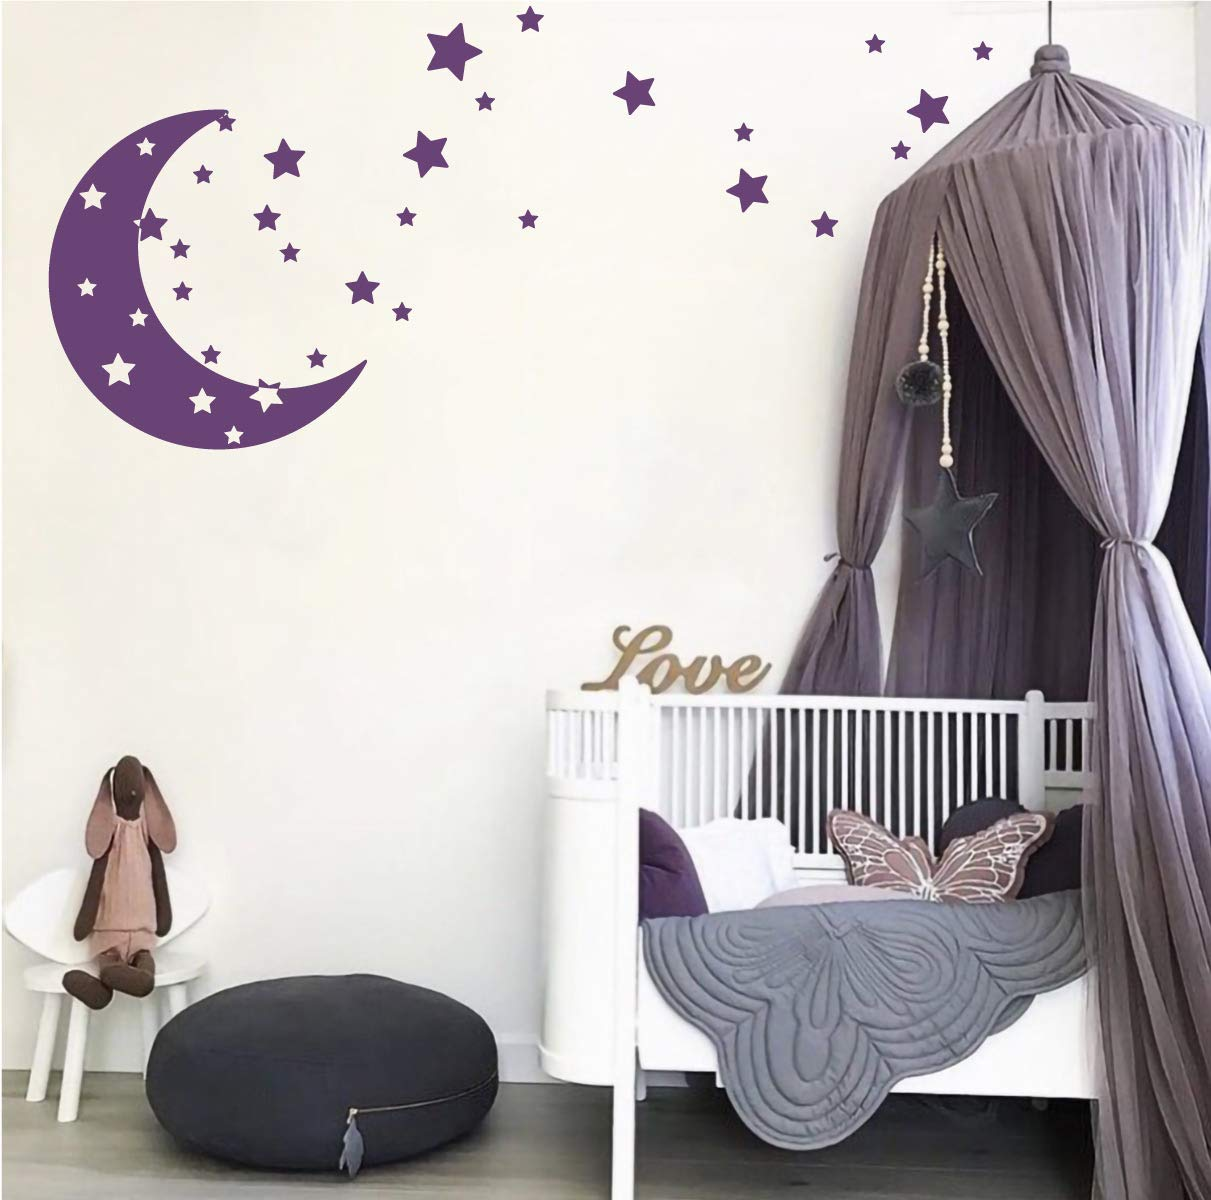 Moon and Stars Night Sky Vinyl Wall Art Decal Sticker Design for Nursery Room DIY Mural Decoration (Burgundy, 22x49 inches) The Decal Guru 2022-WALL-01-01